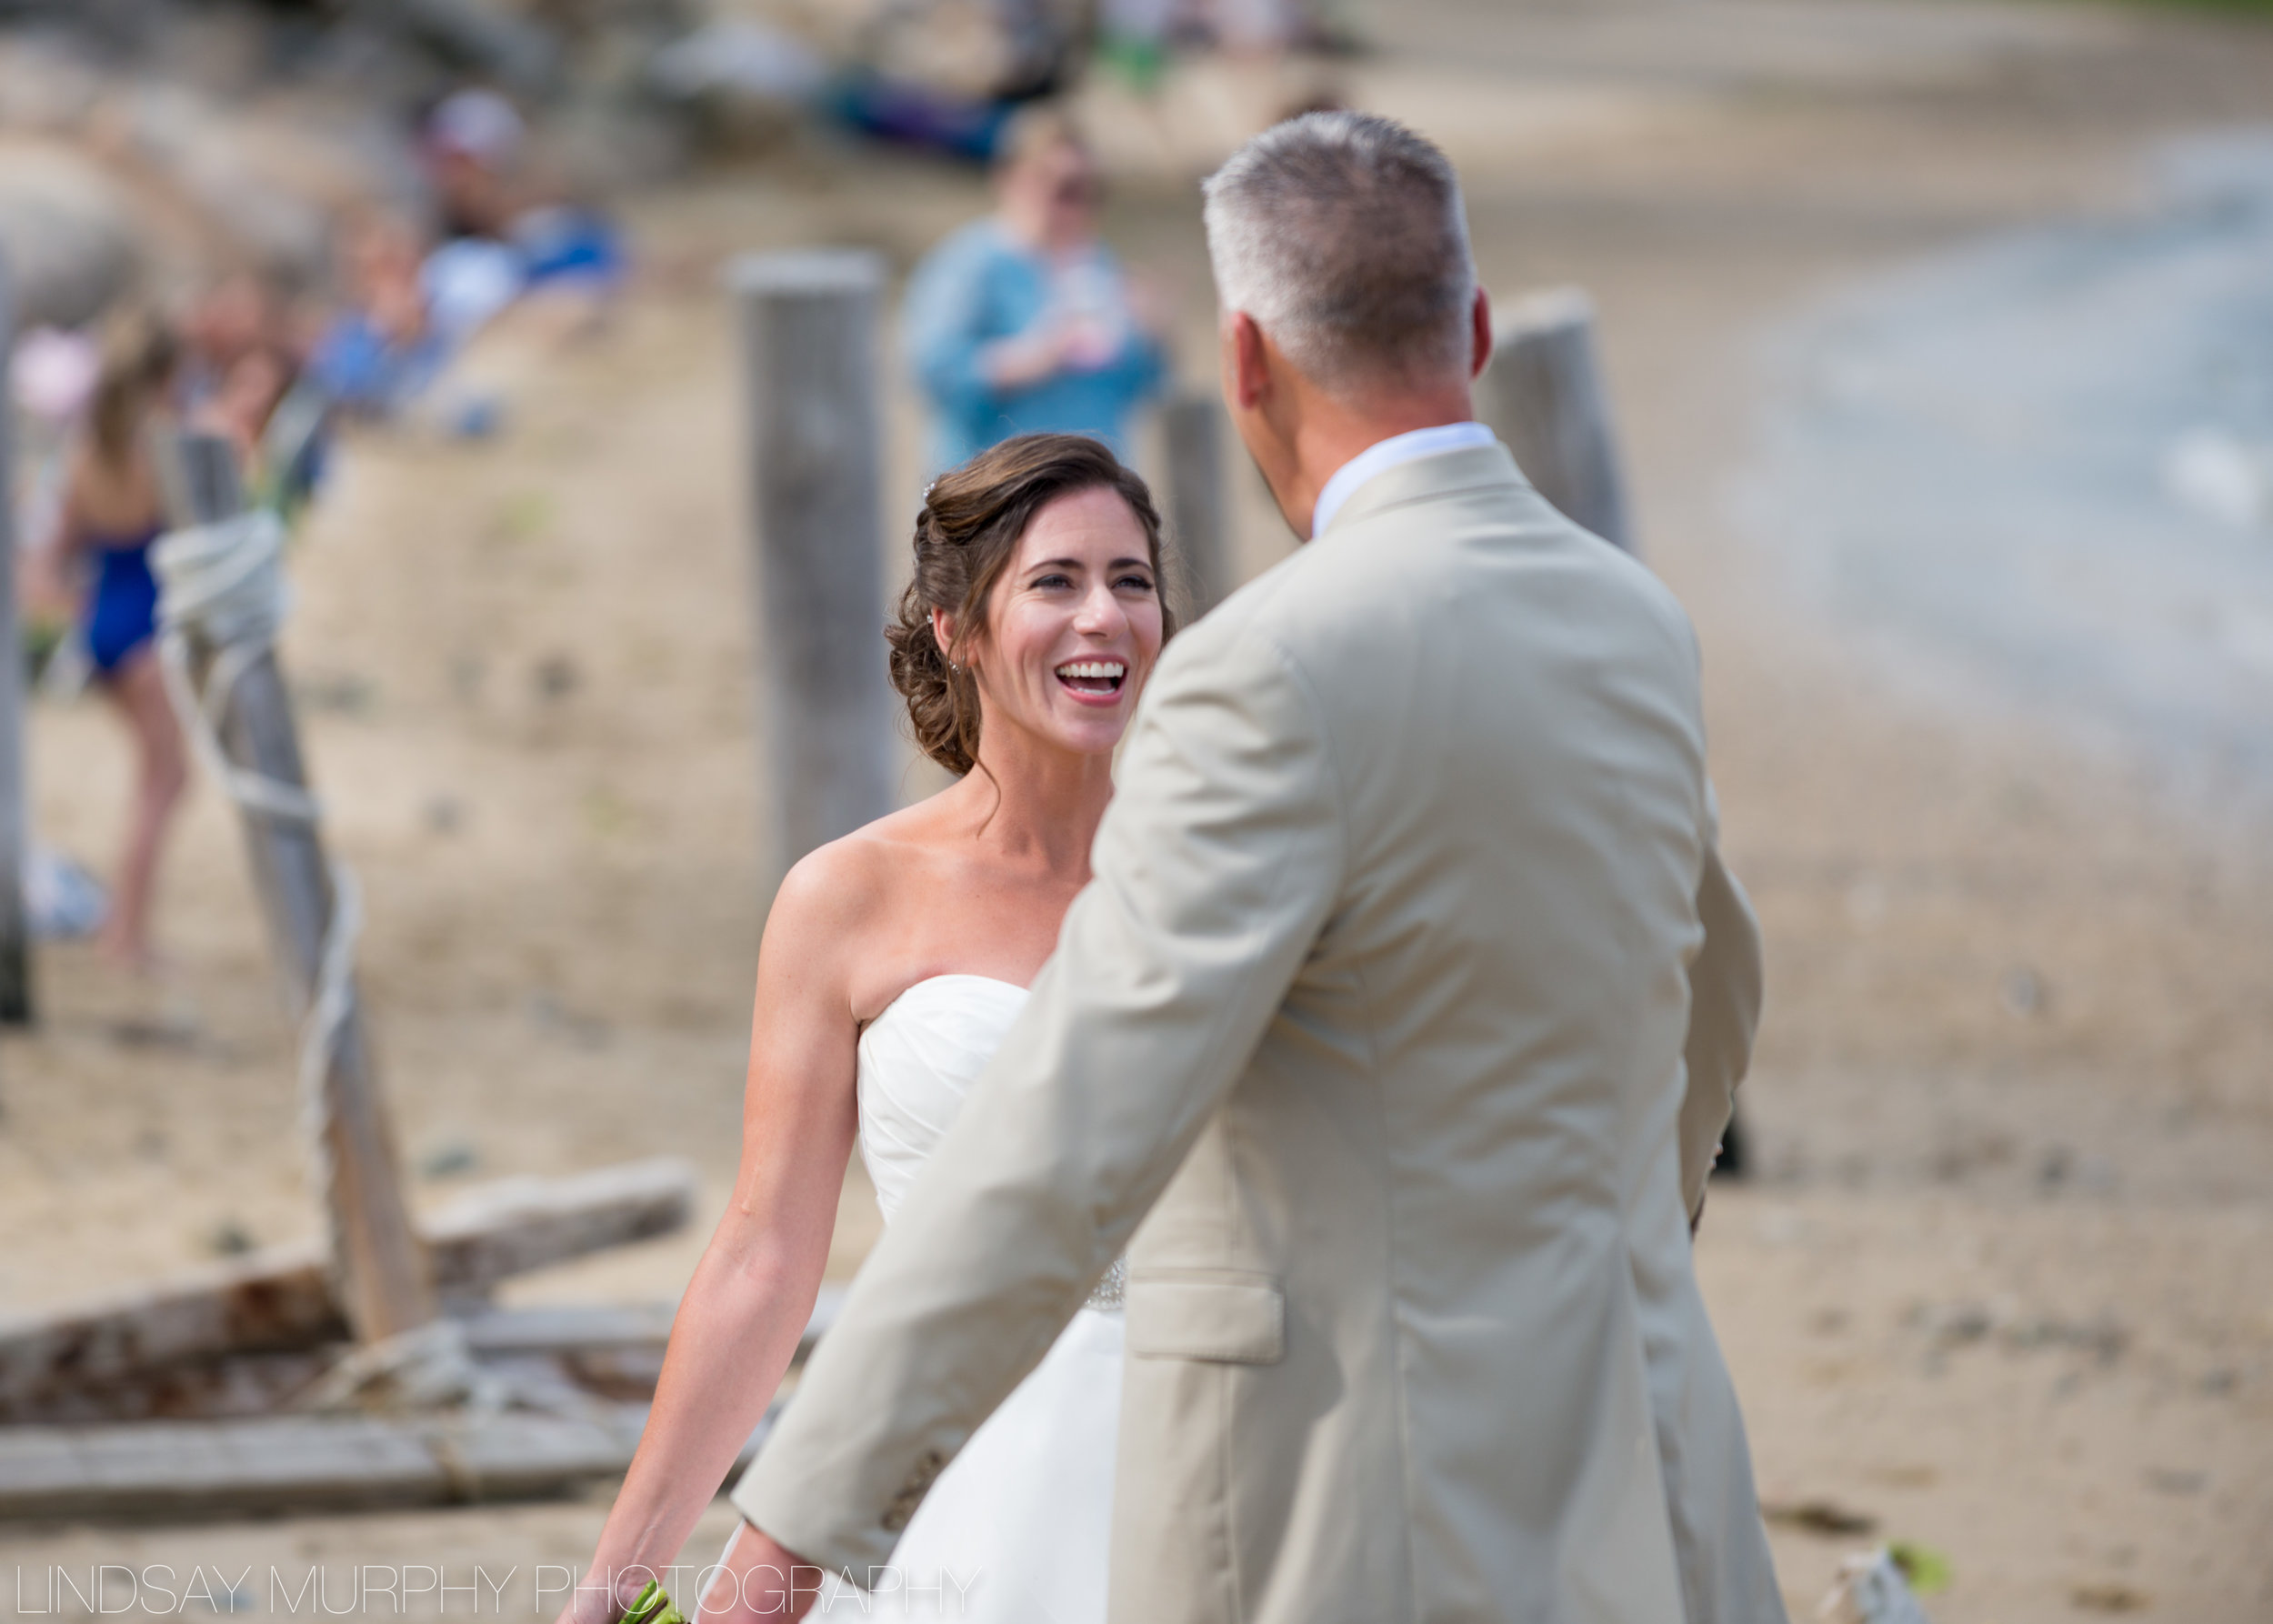 Duxbury_Wedding_Photographer-500.jpg